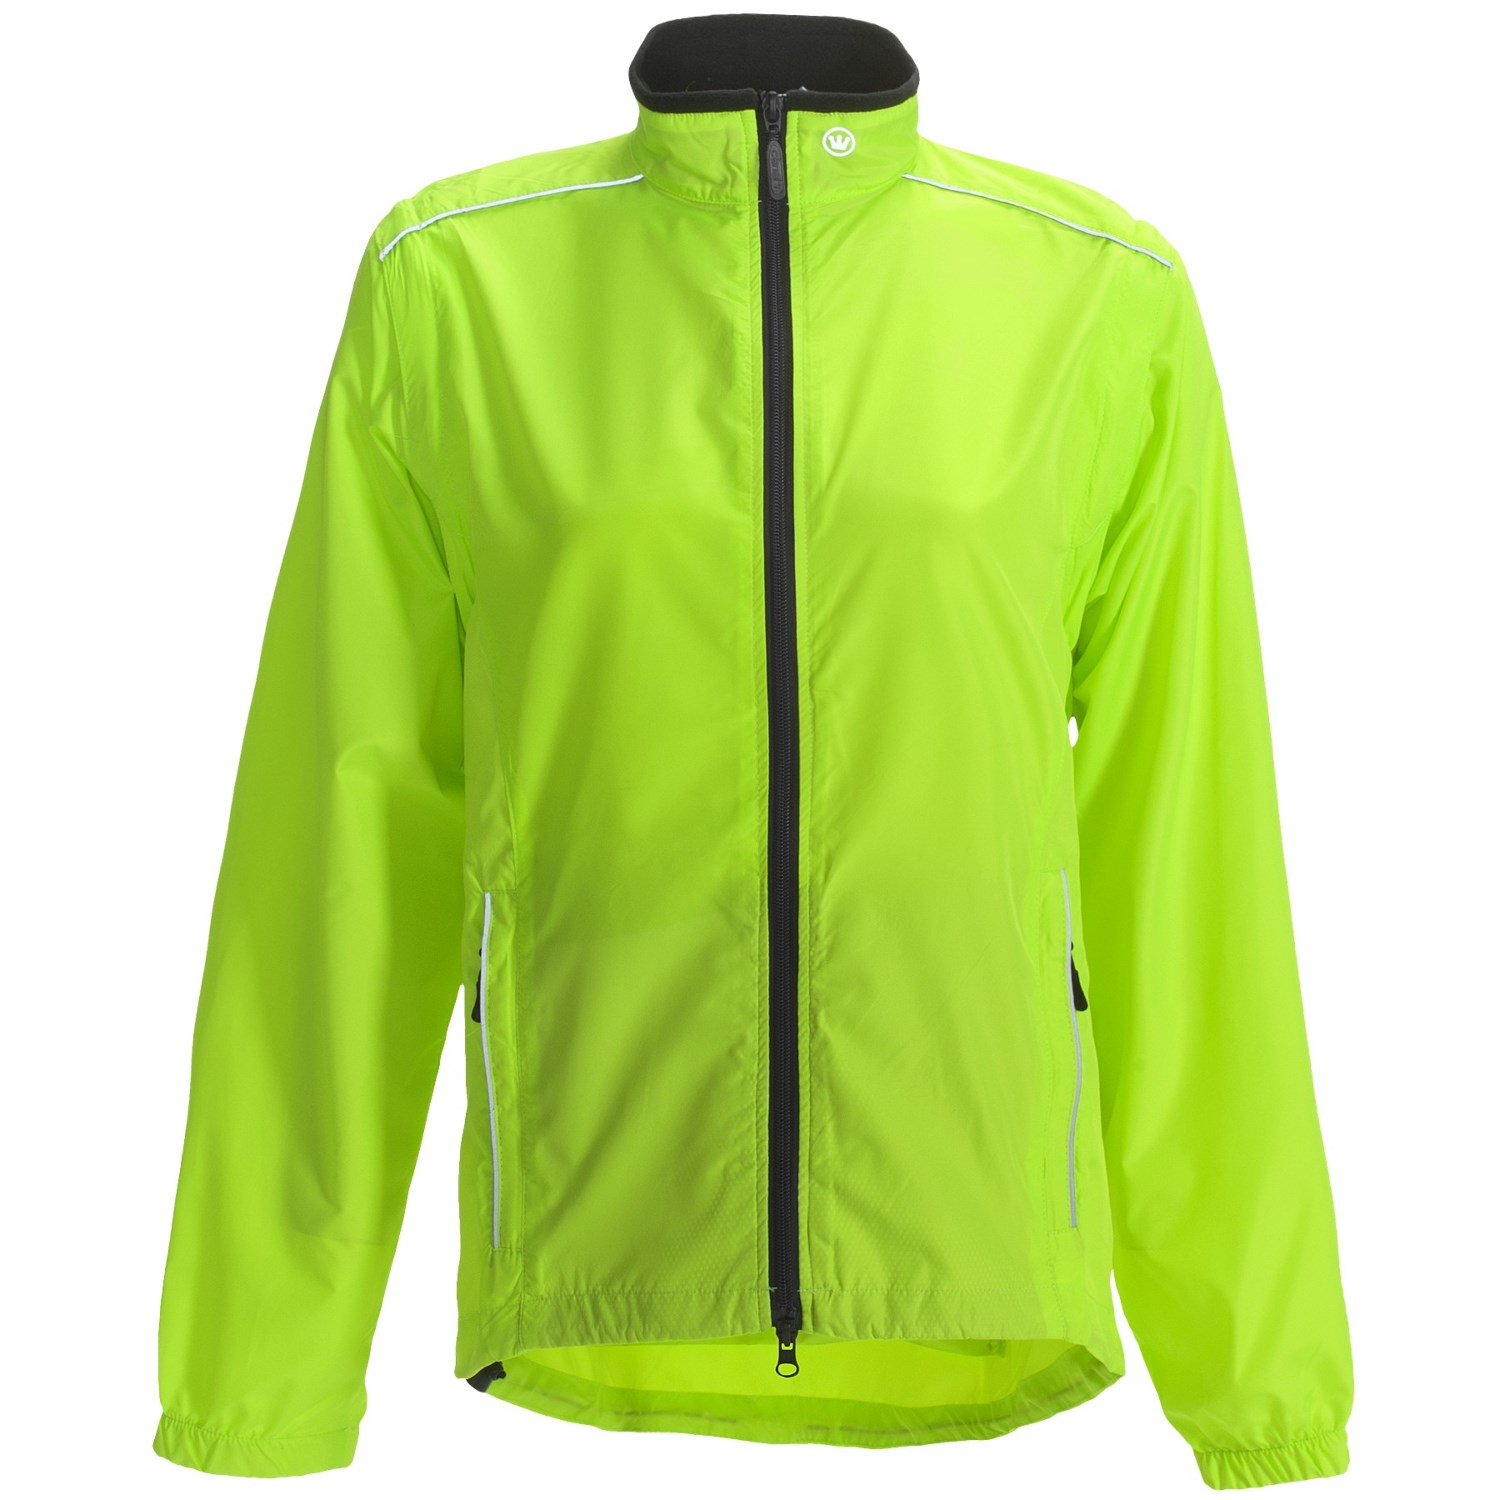 Cycling Jacket Canari Tour Cycling Jacket For Women Save 28